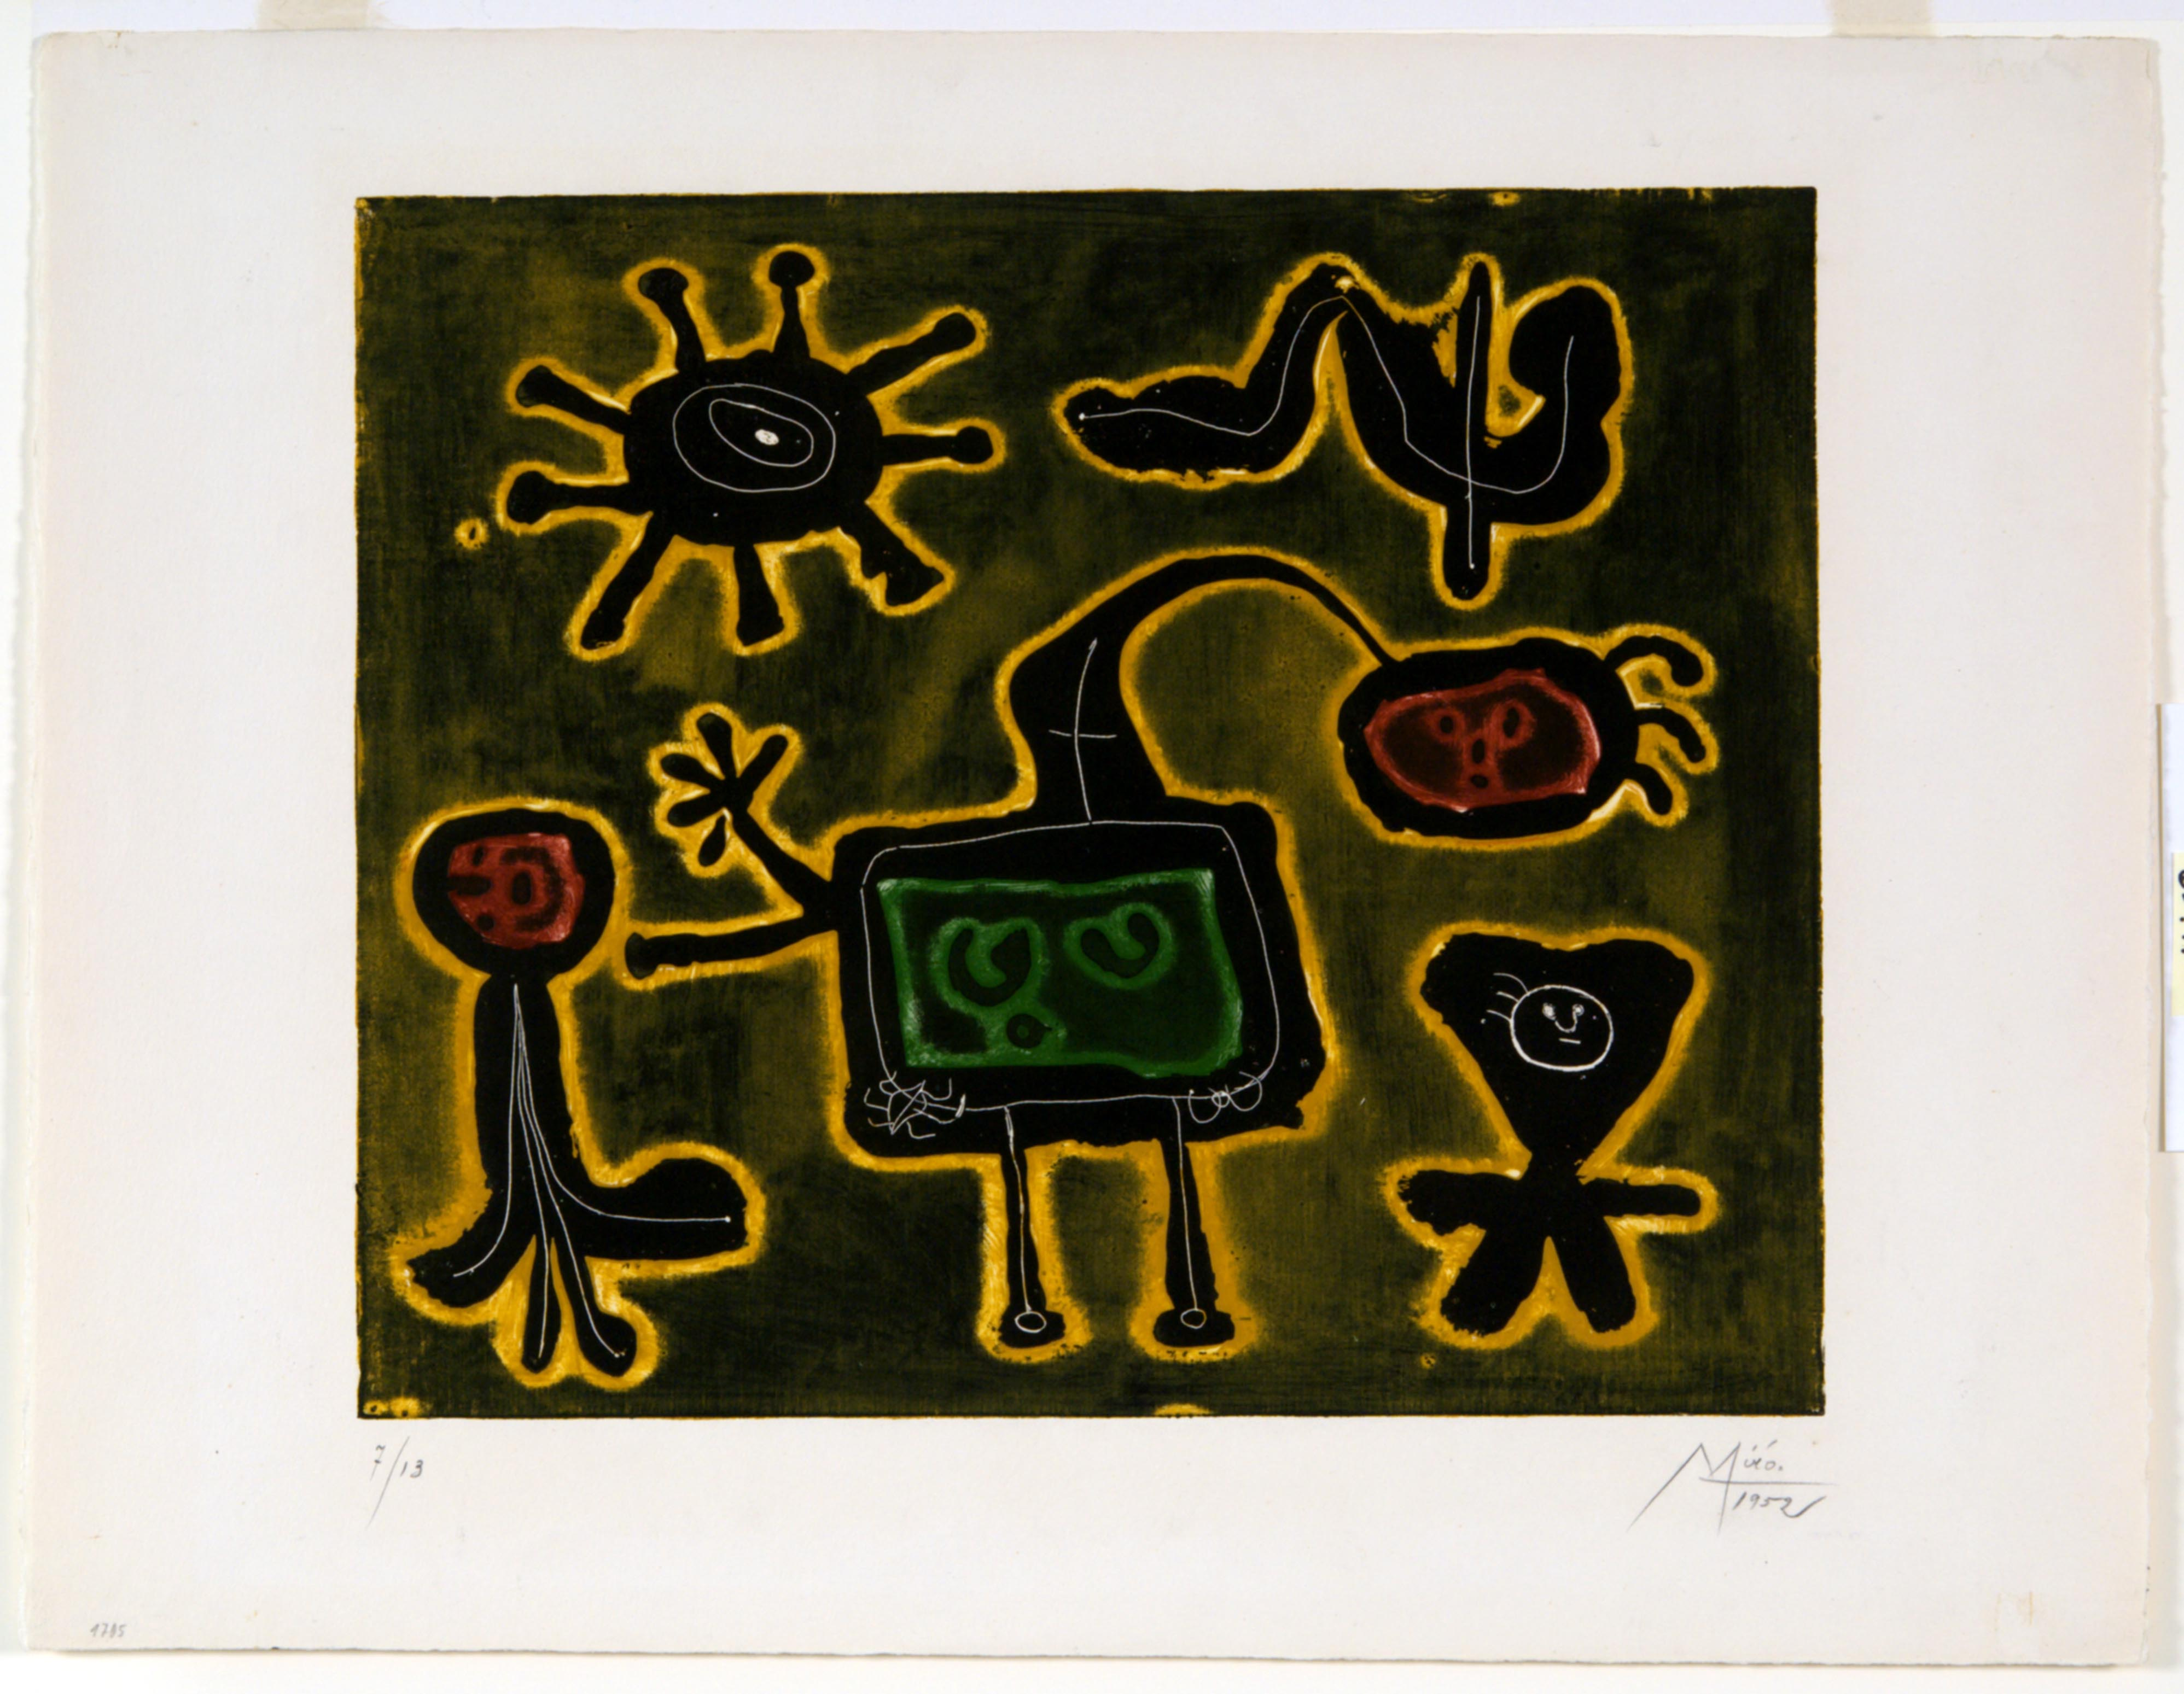 Joan Miró, Composition from Serie I, 1952